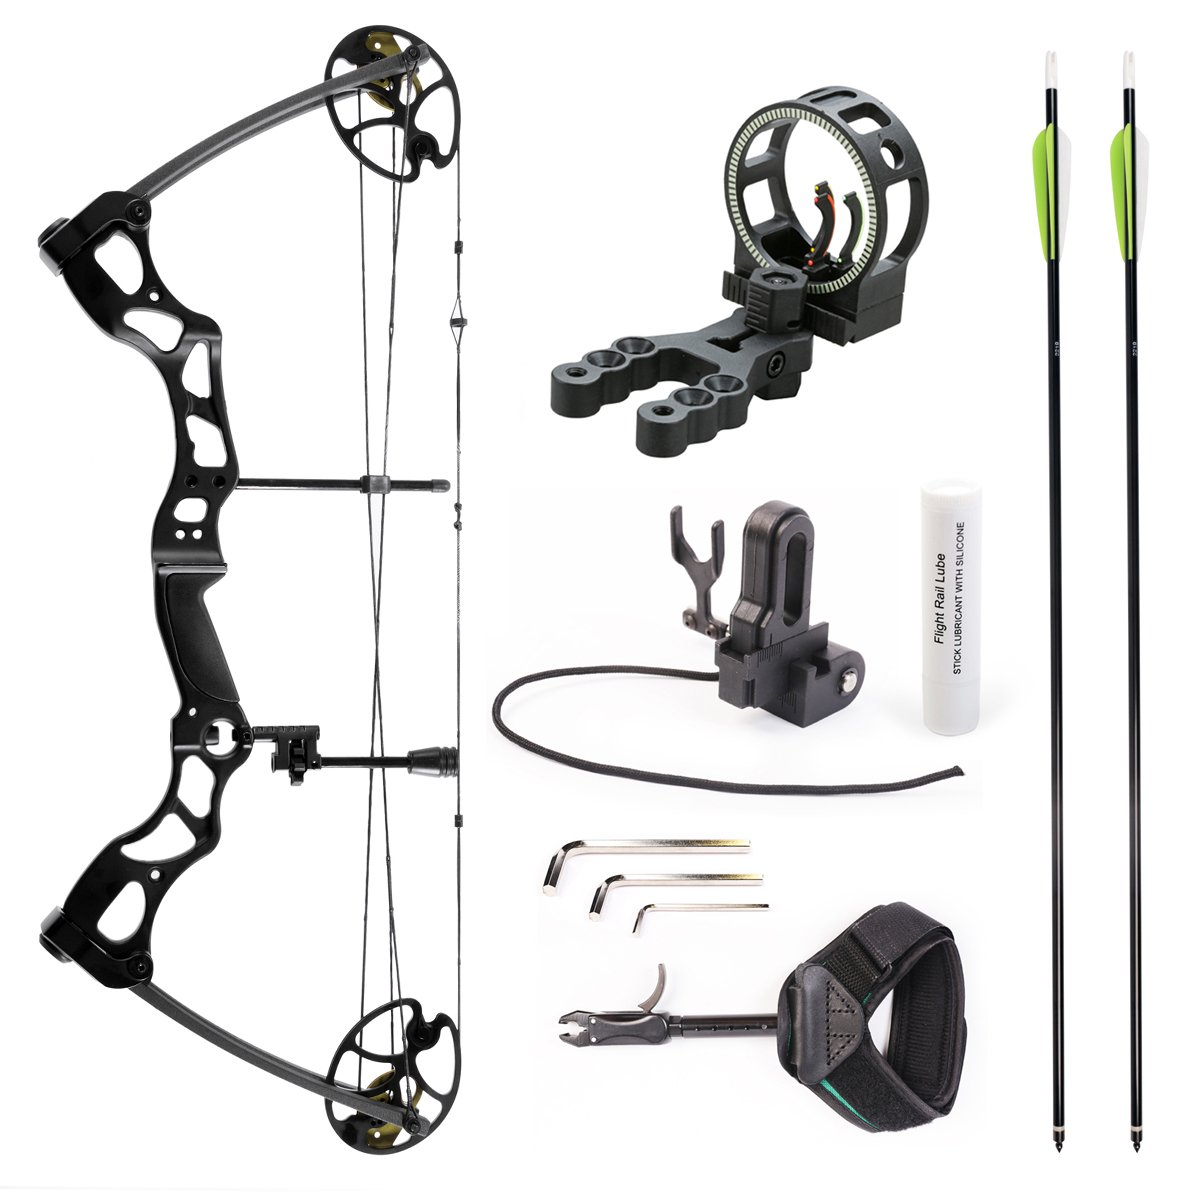 Leader Accessories Compound Bow Archery Hunting Equipment